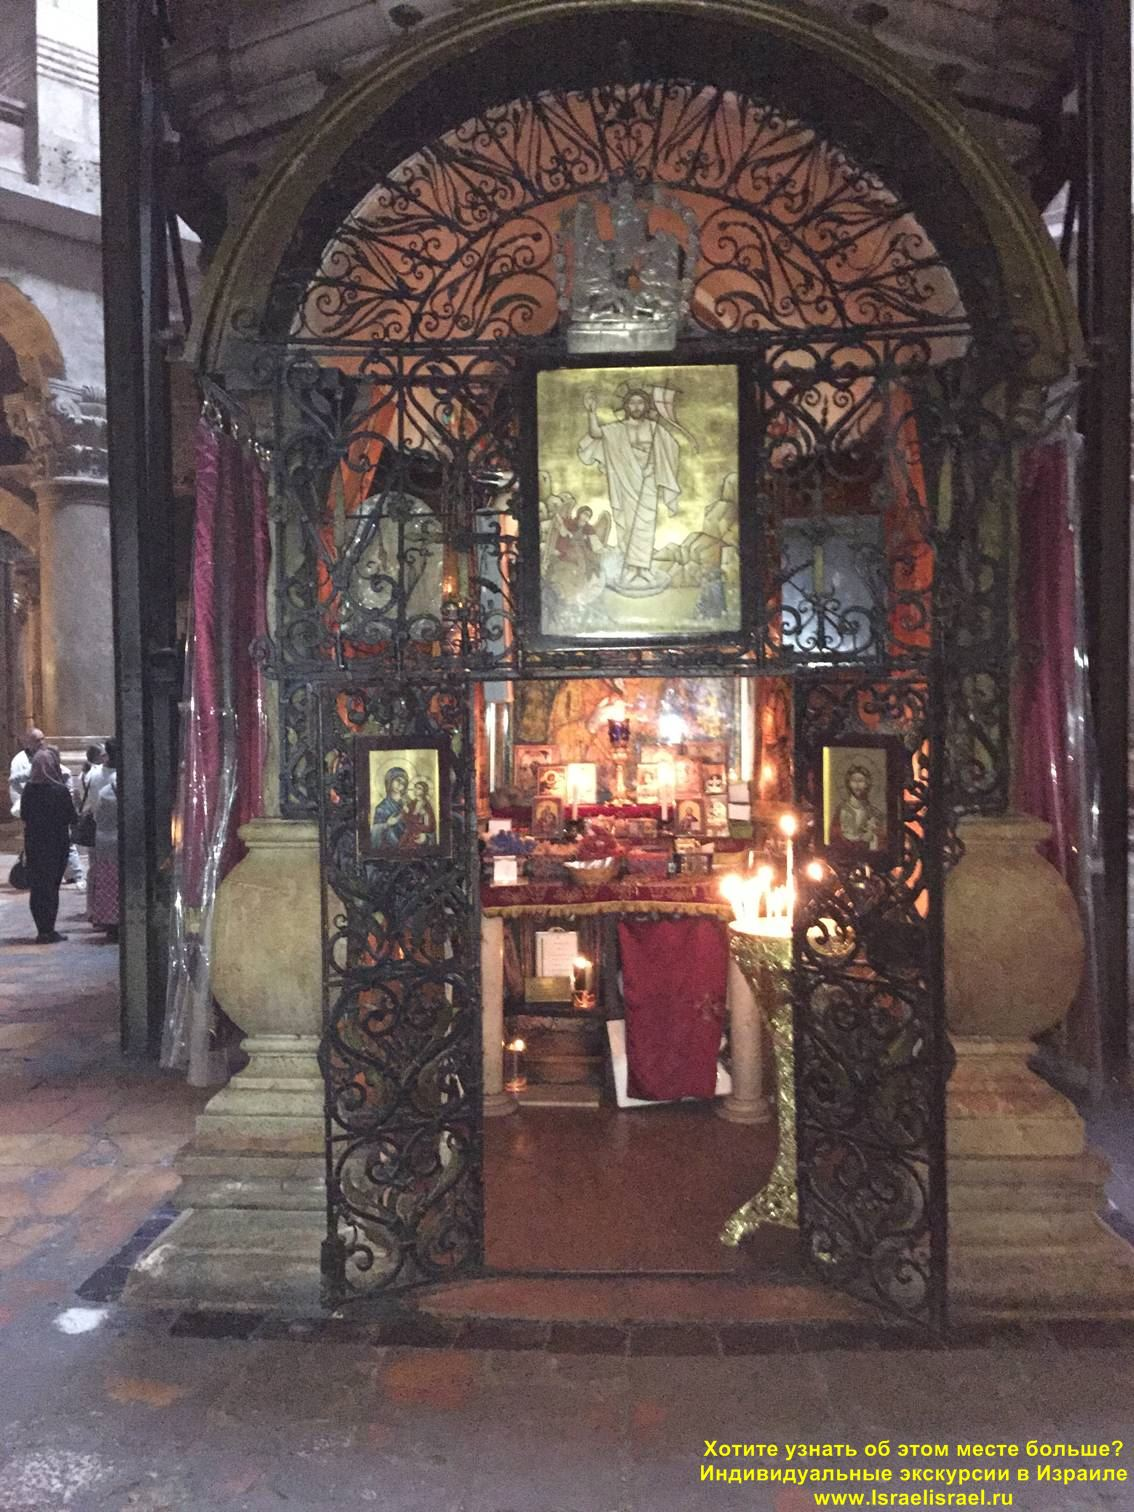 the modern state of the Coptic Church